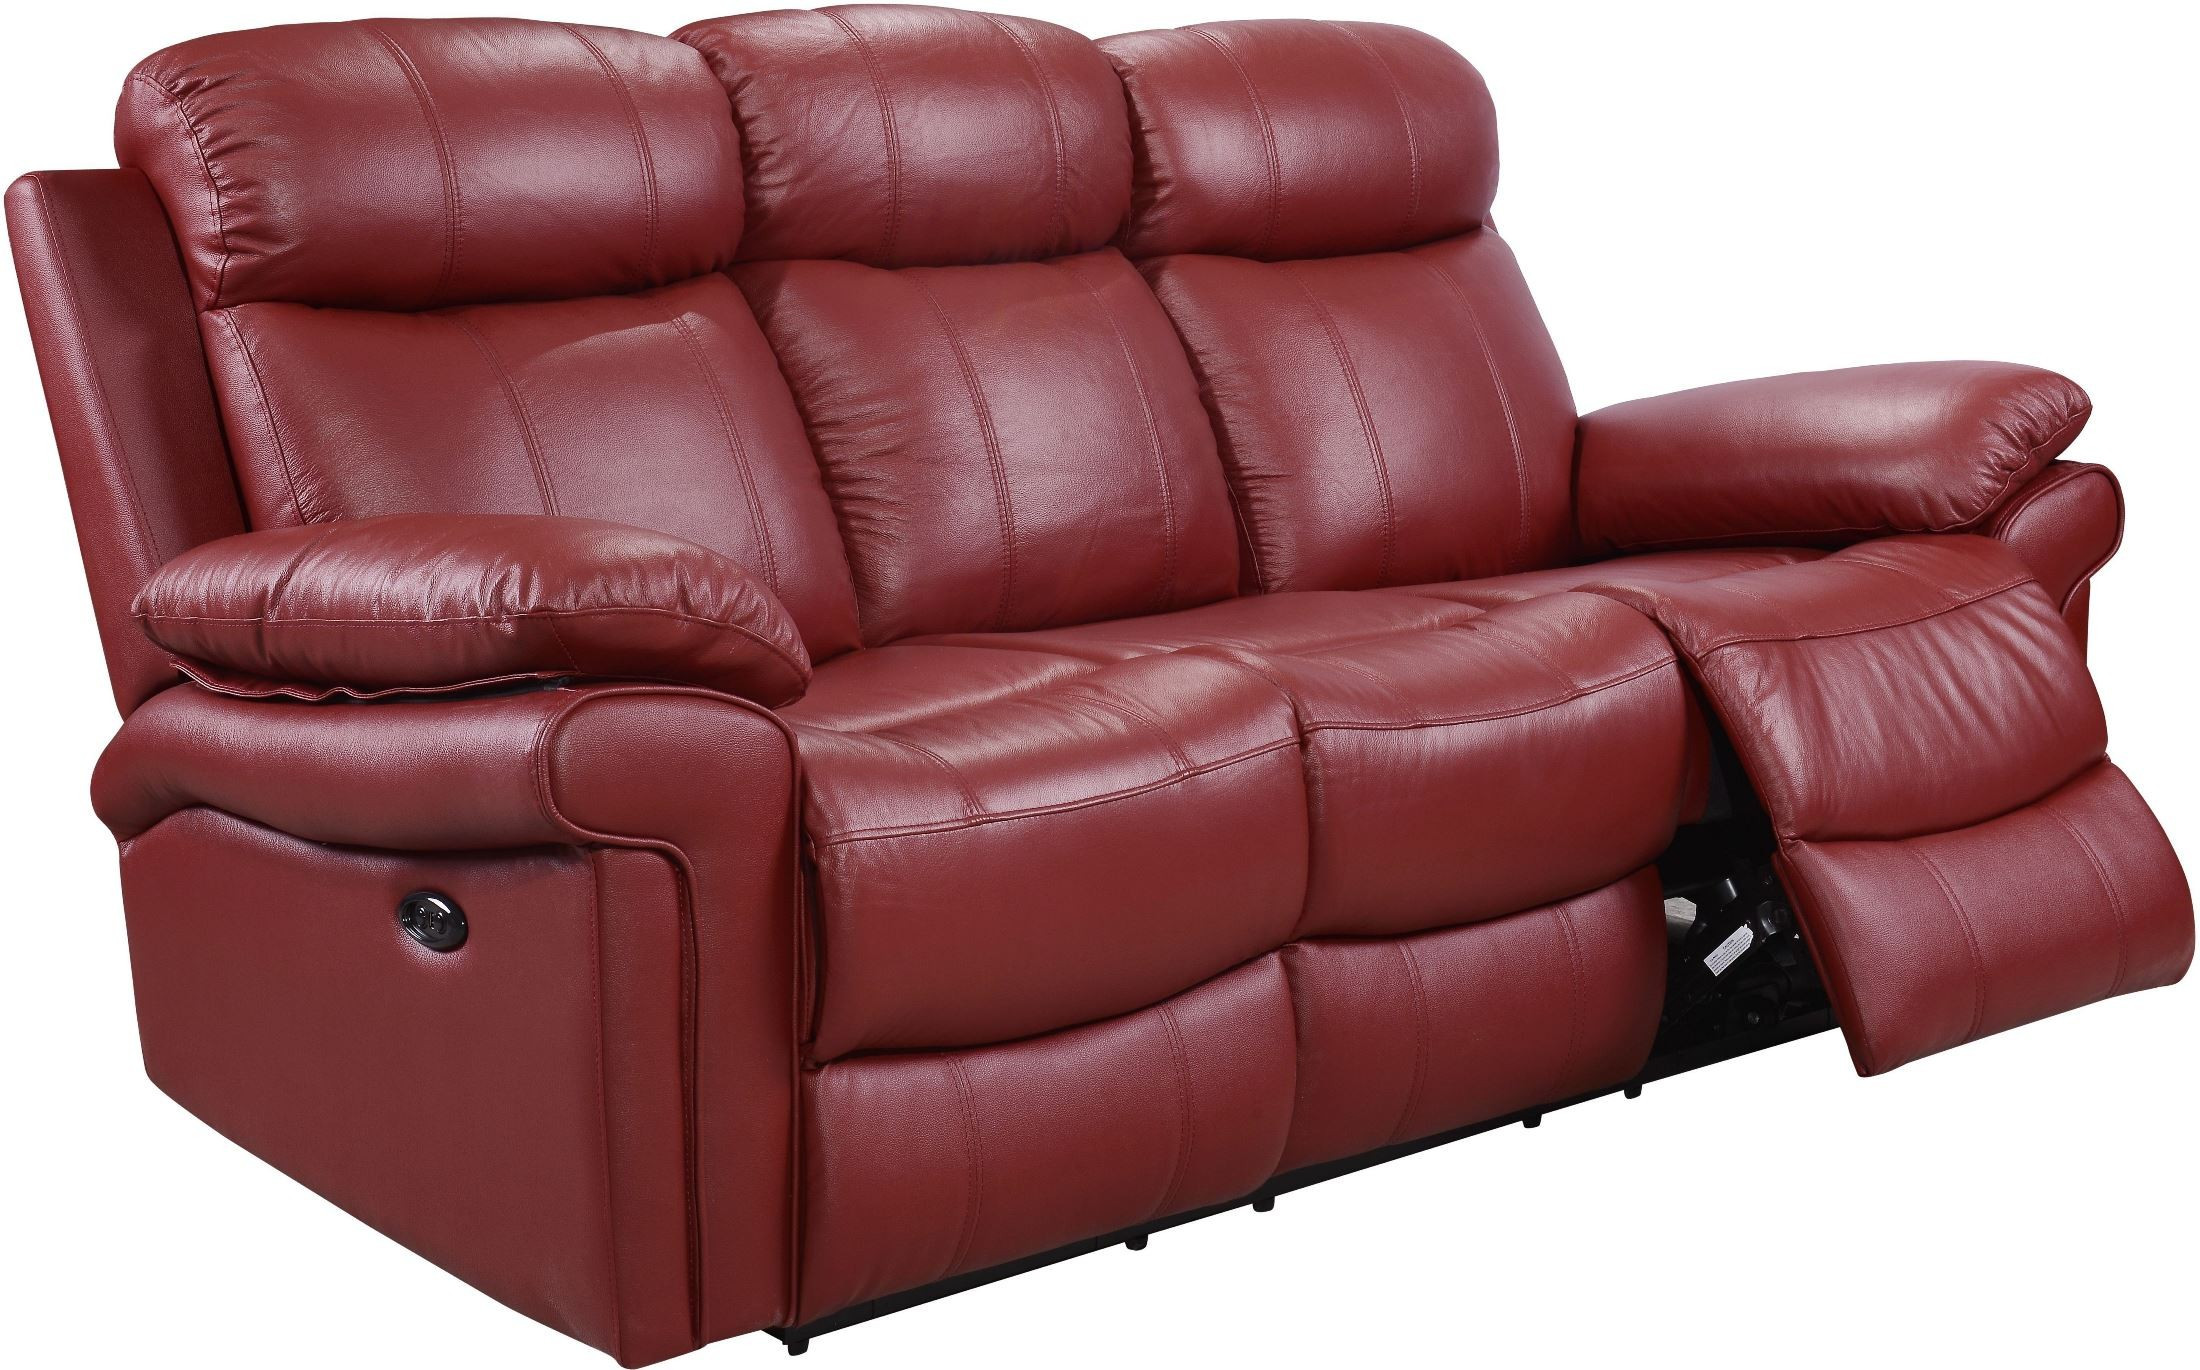 Best ideas about Red Recliner Sofa . Save or Pin Shae Joplin Red Leather Power Reclining Sofa from Luxe Now.